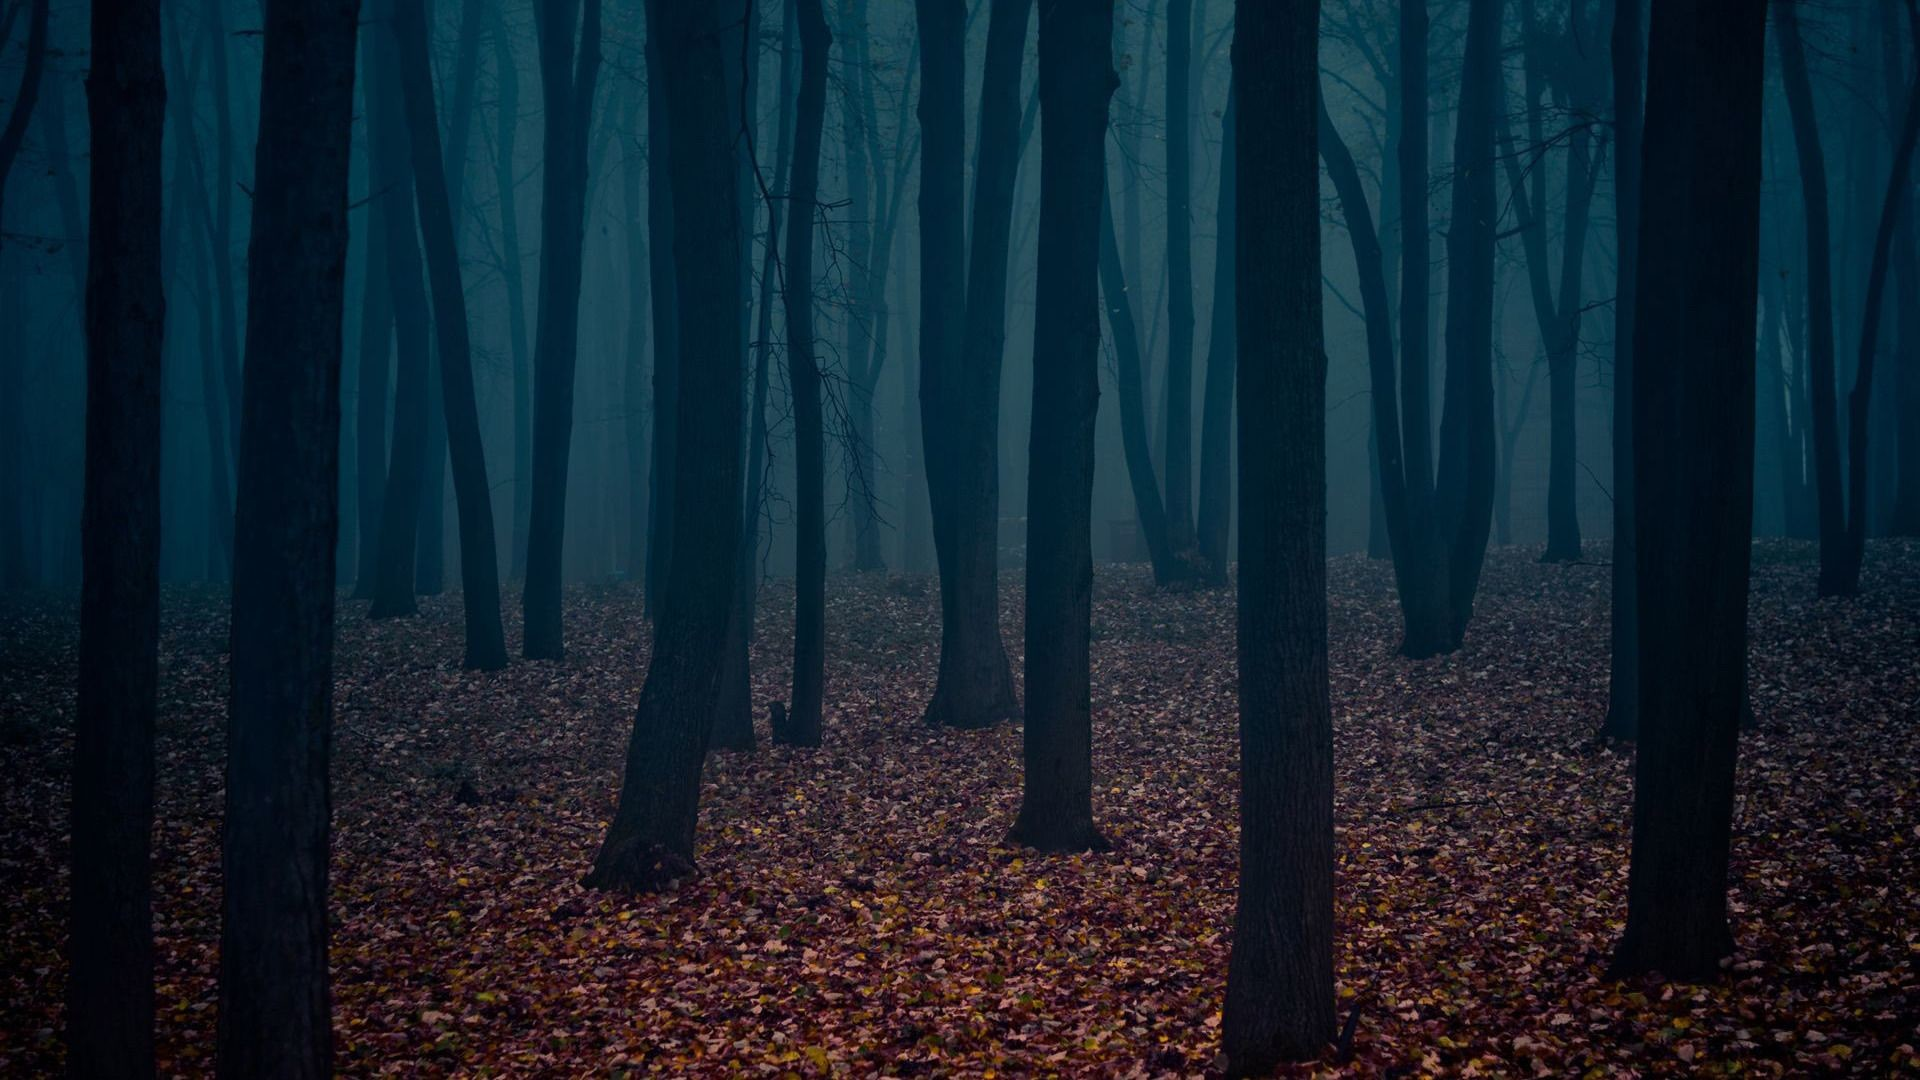 Res: 1920x1080, Dark Forest Wallpaper For Iphone #AEQ